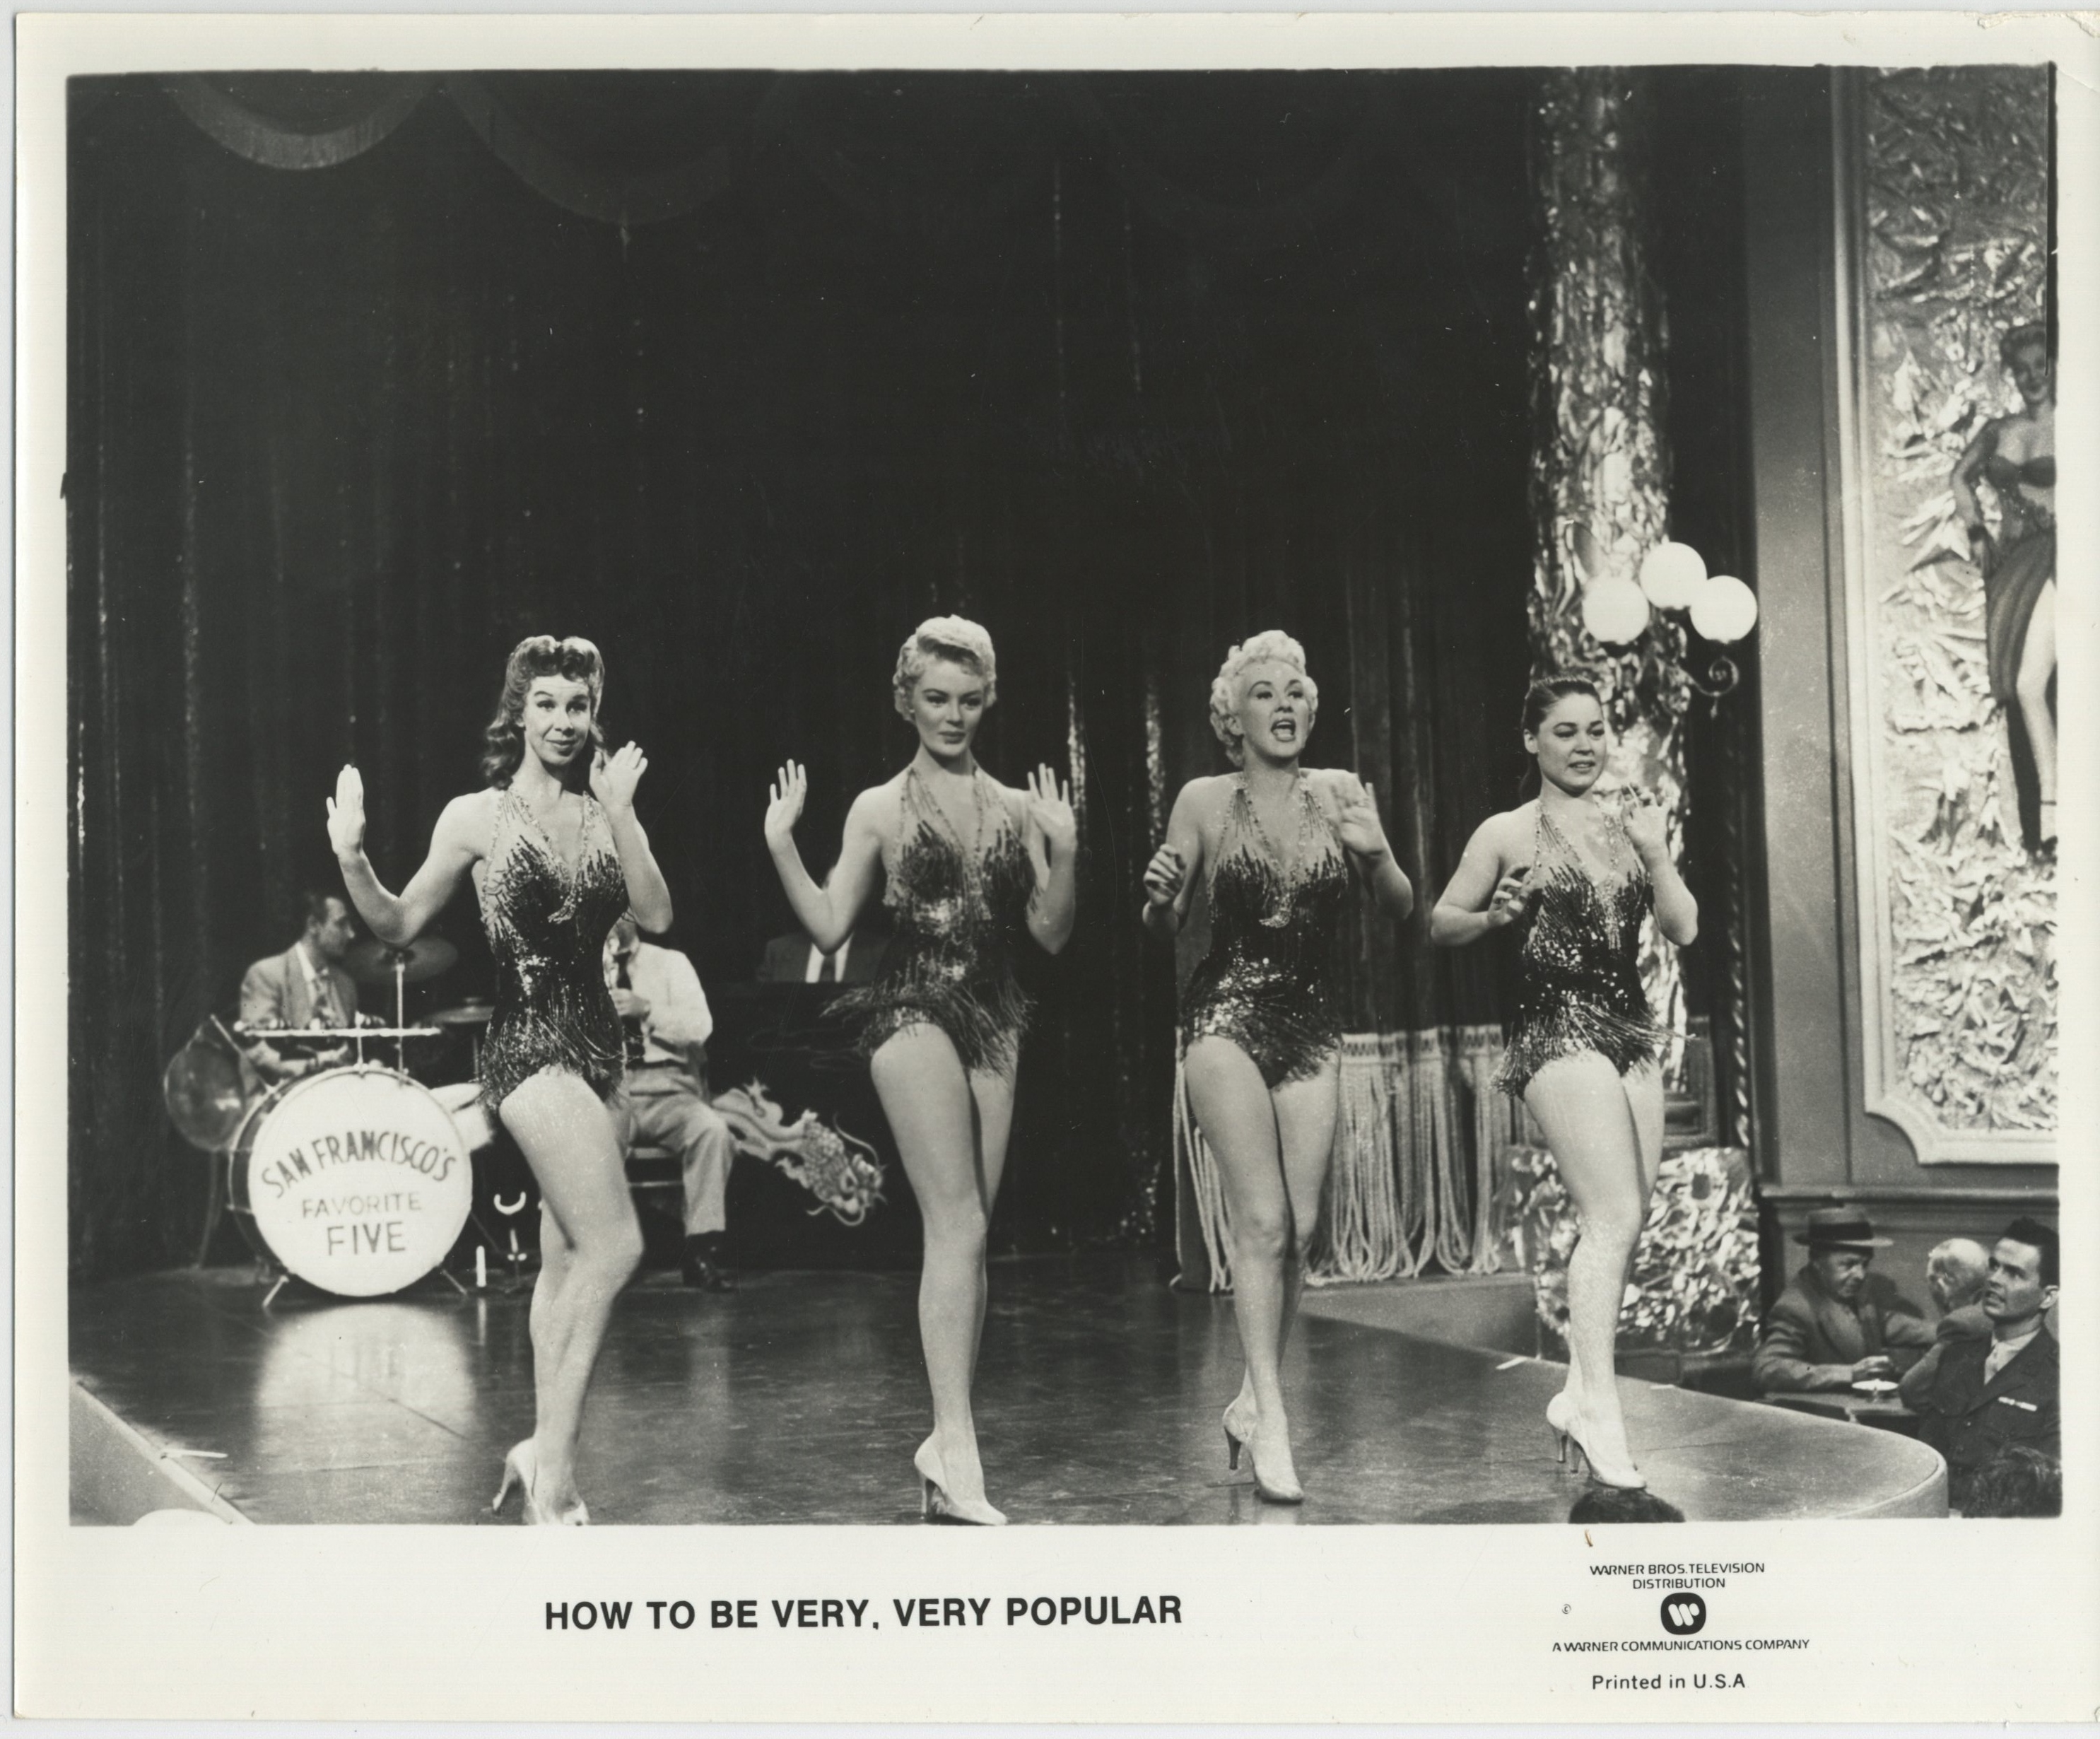 Betty Grable, Janice Carroll, and Sheree North in How to Be Very, Very Popular (1955)